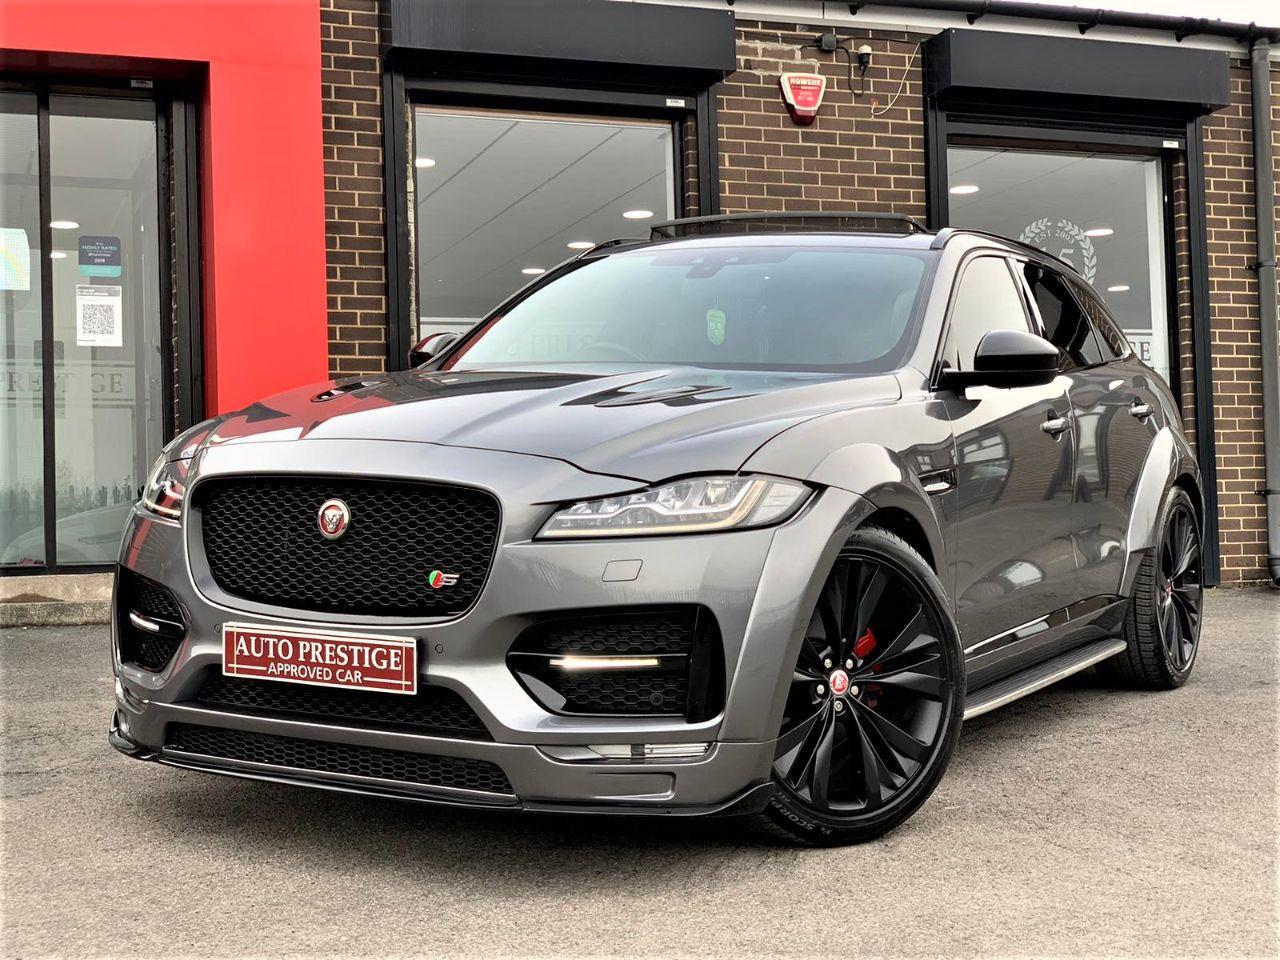 Jaguar F-pace 3.0d V6 S 5dr Auto AWD GTS UPGRADES PANROOF REAR ENTERTAINMENT Estate Diesel Grey